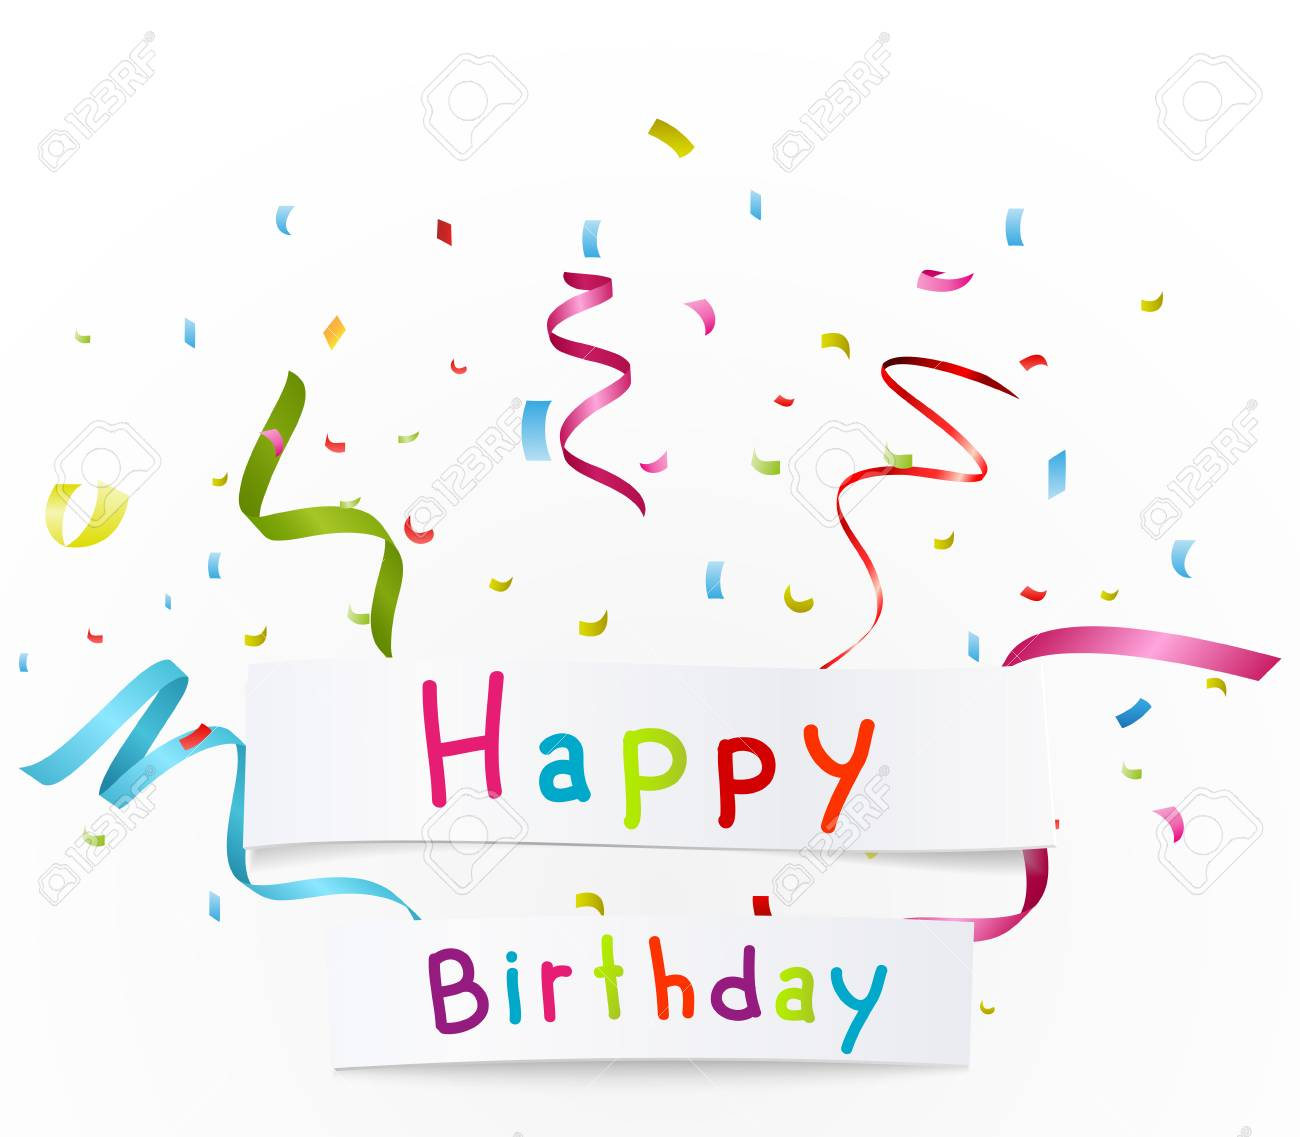 Happy Birthday Greetings With Paper Royalty Free Cliparts Vectors